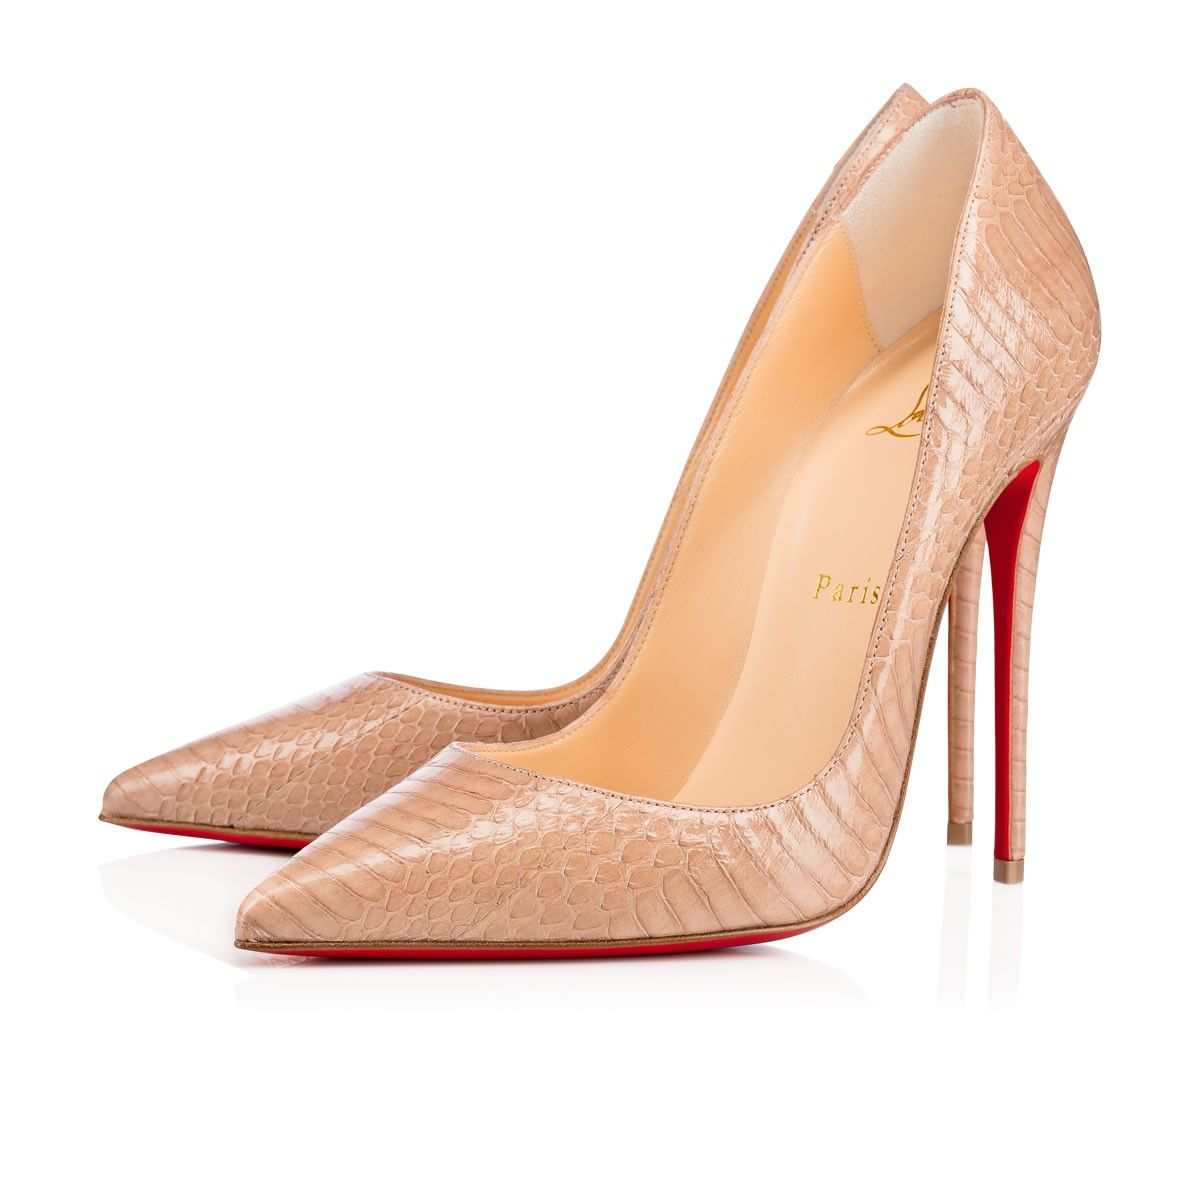 75cb6ca7d2c2 Shoes - So Kate - Christian Louboutin